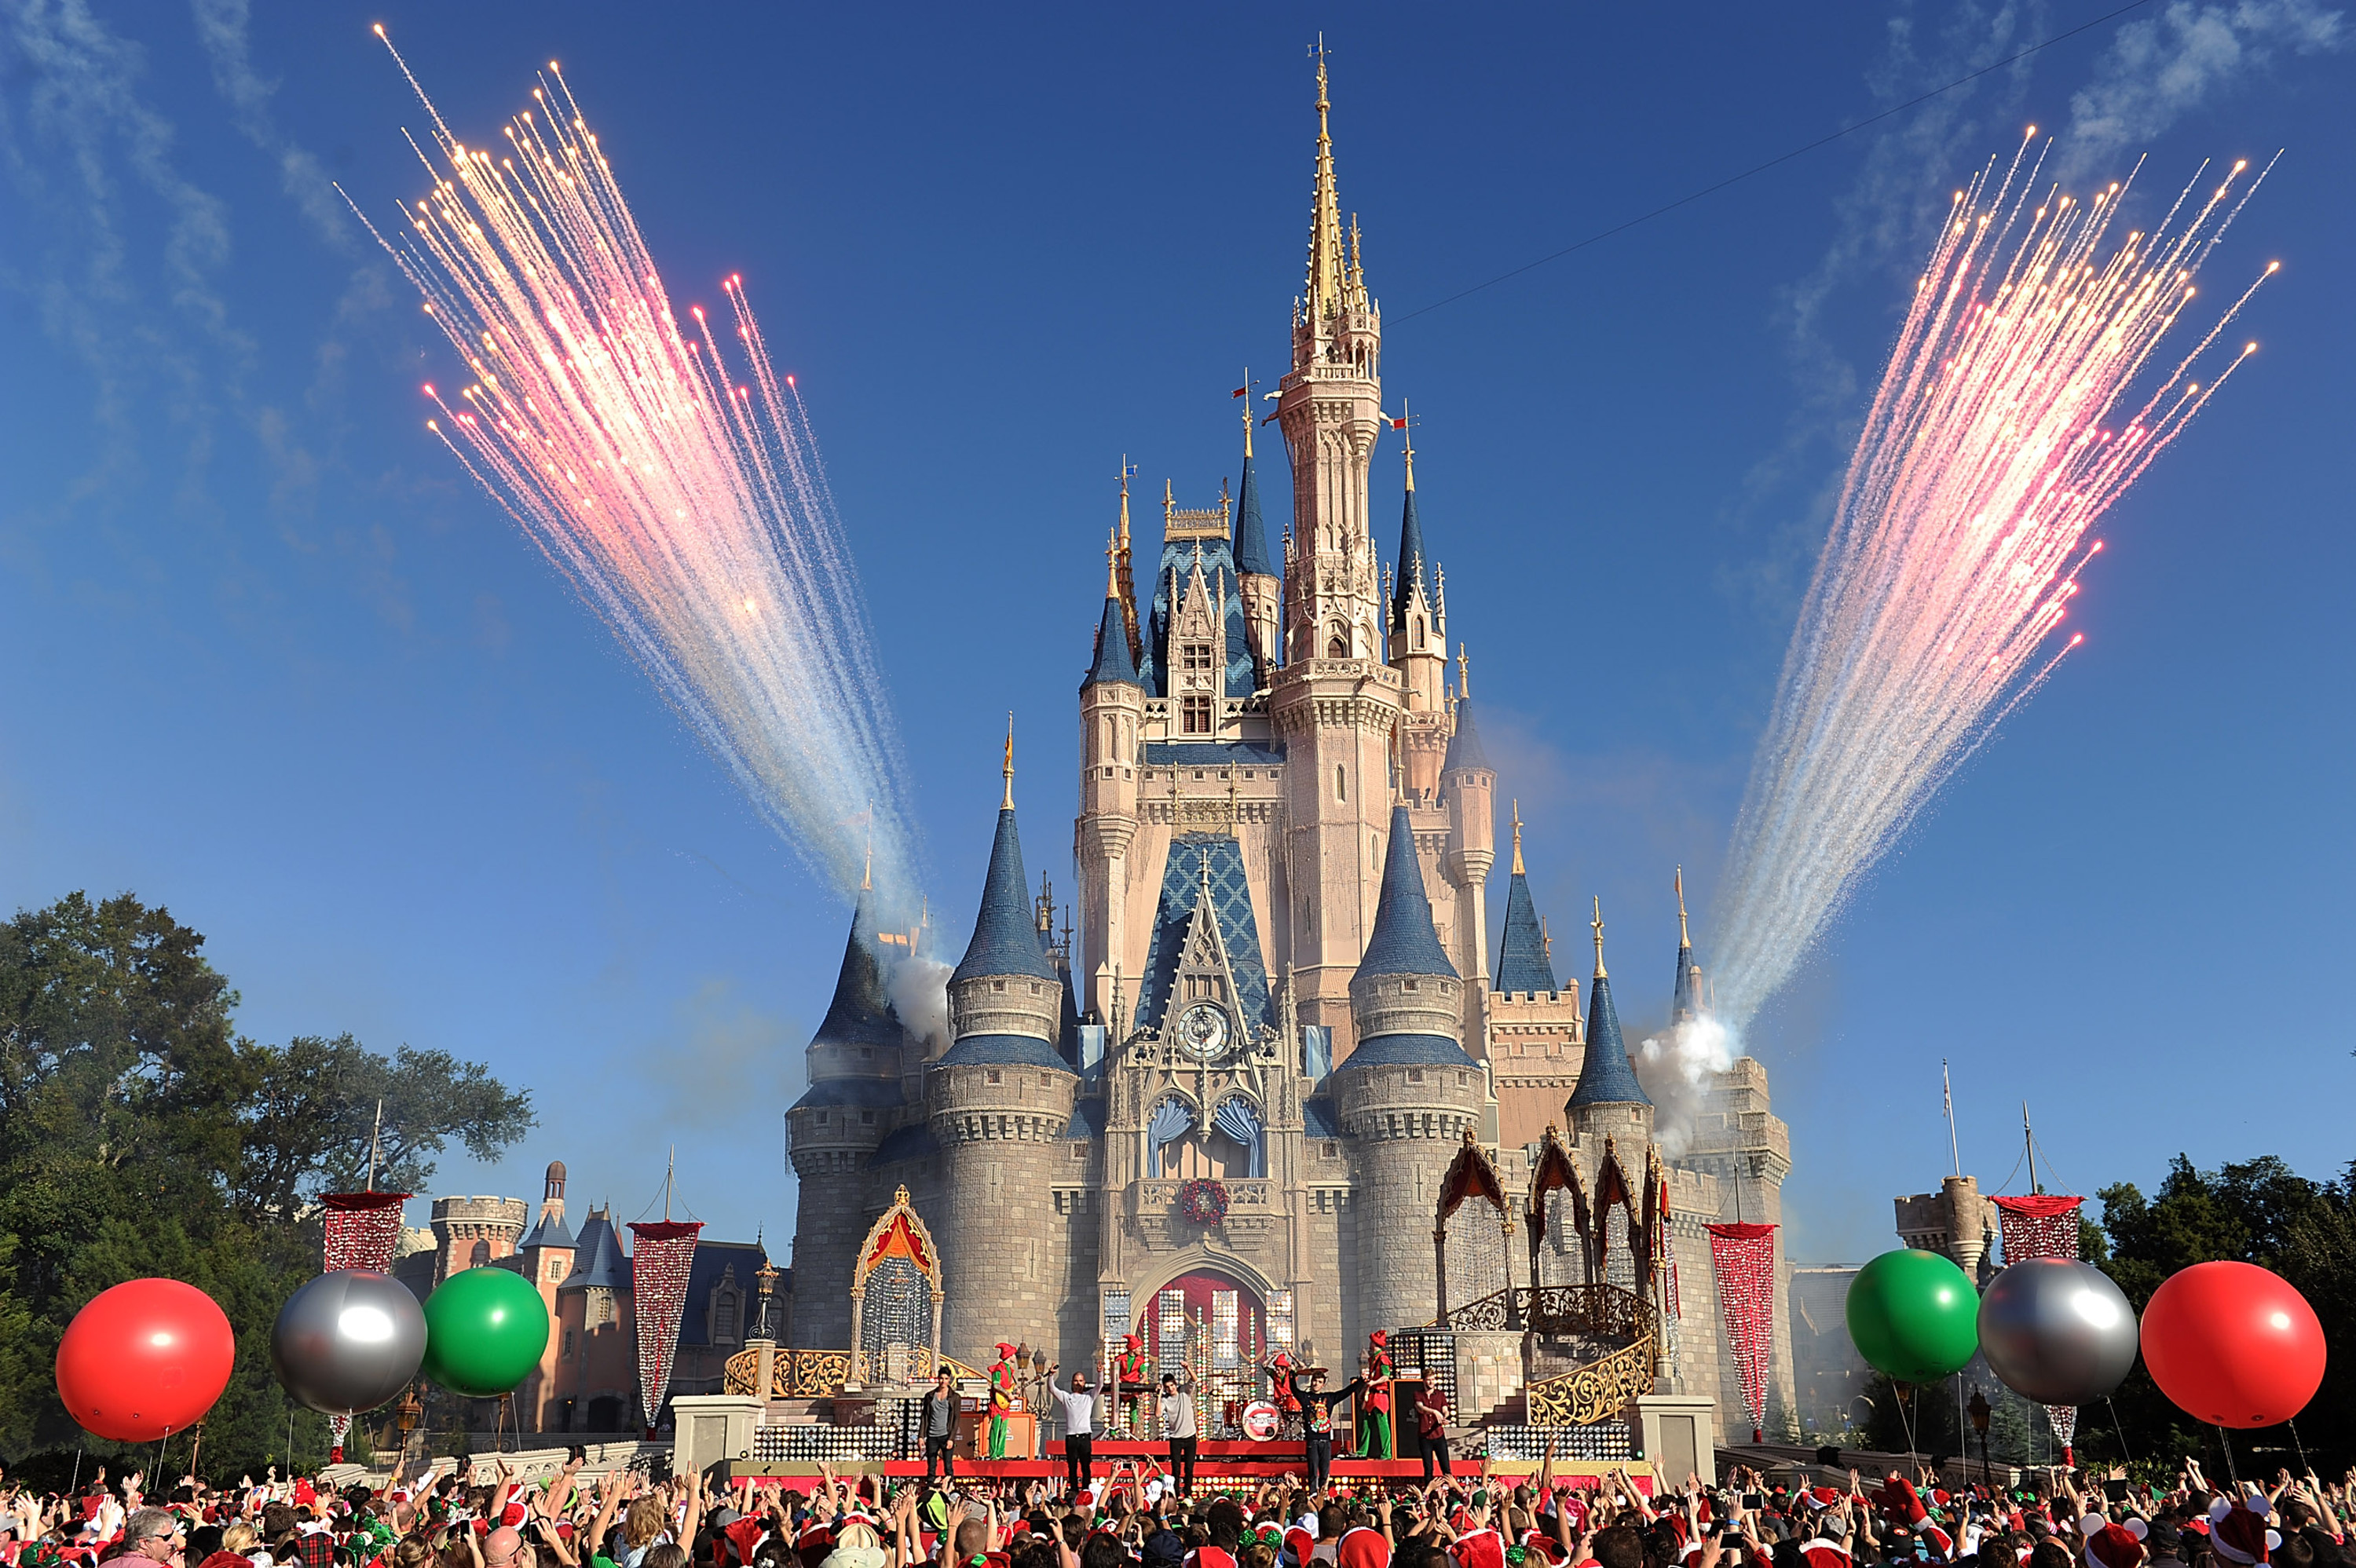 One-day ticket to Disney World park to exceed $100 with price increase